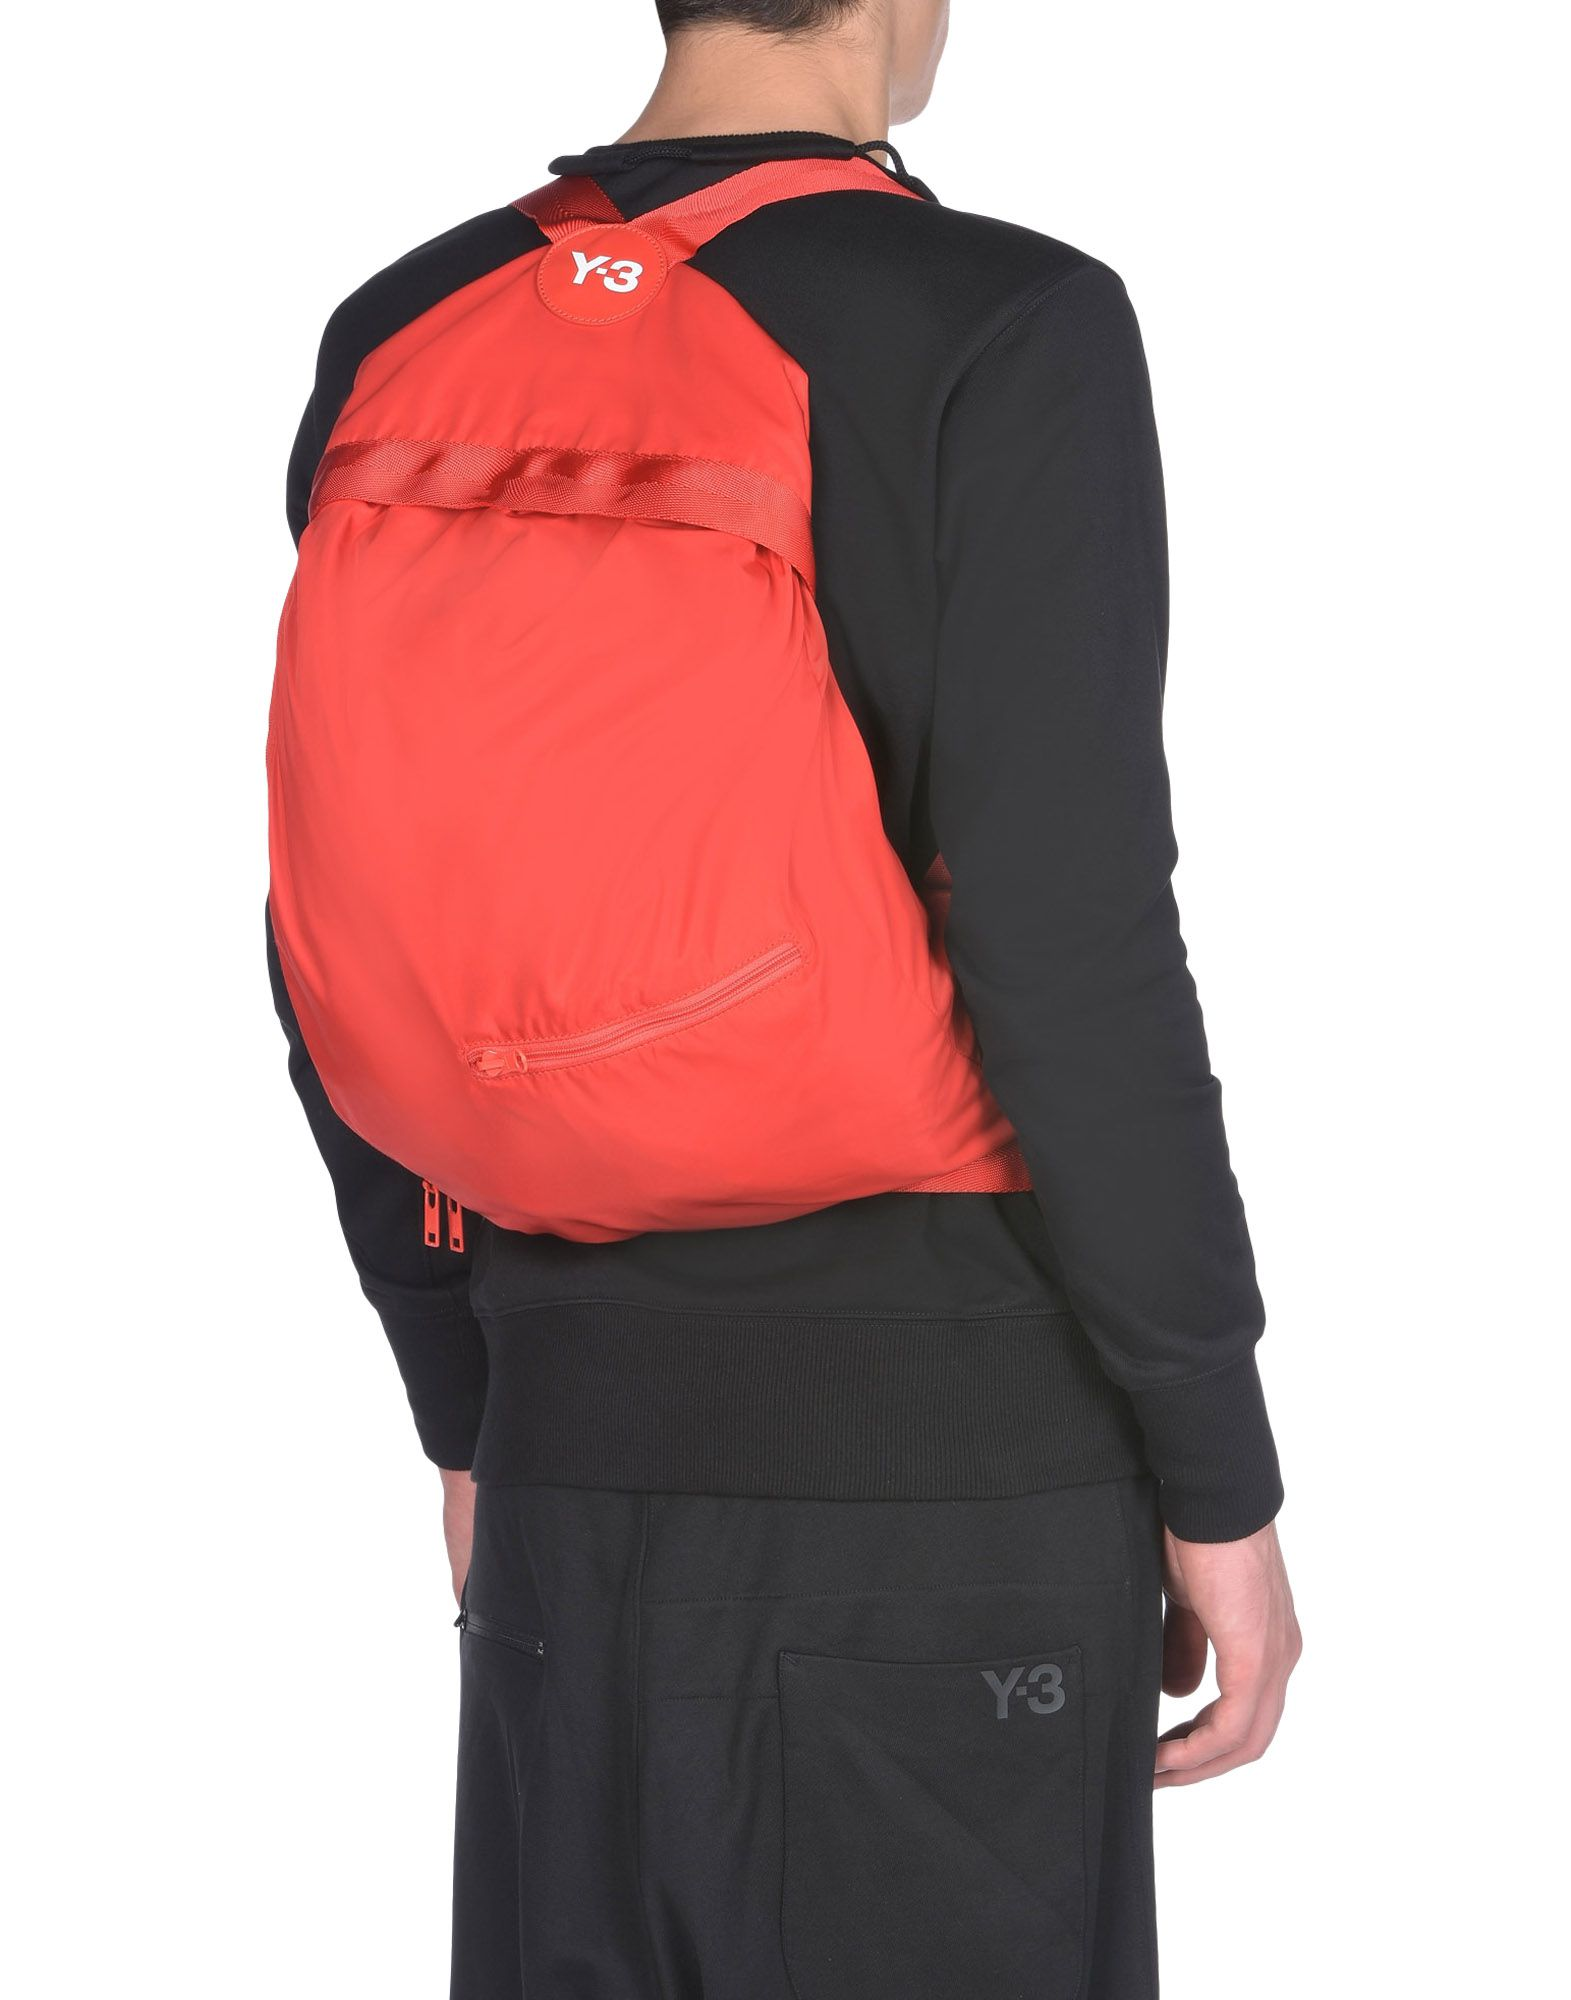 Y-3 PACKABLE BAG BAGS unisex Y-3 adidas